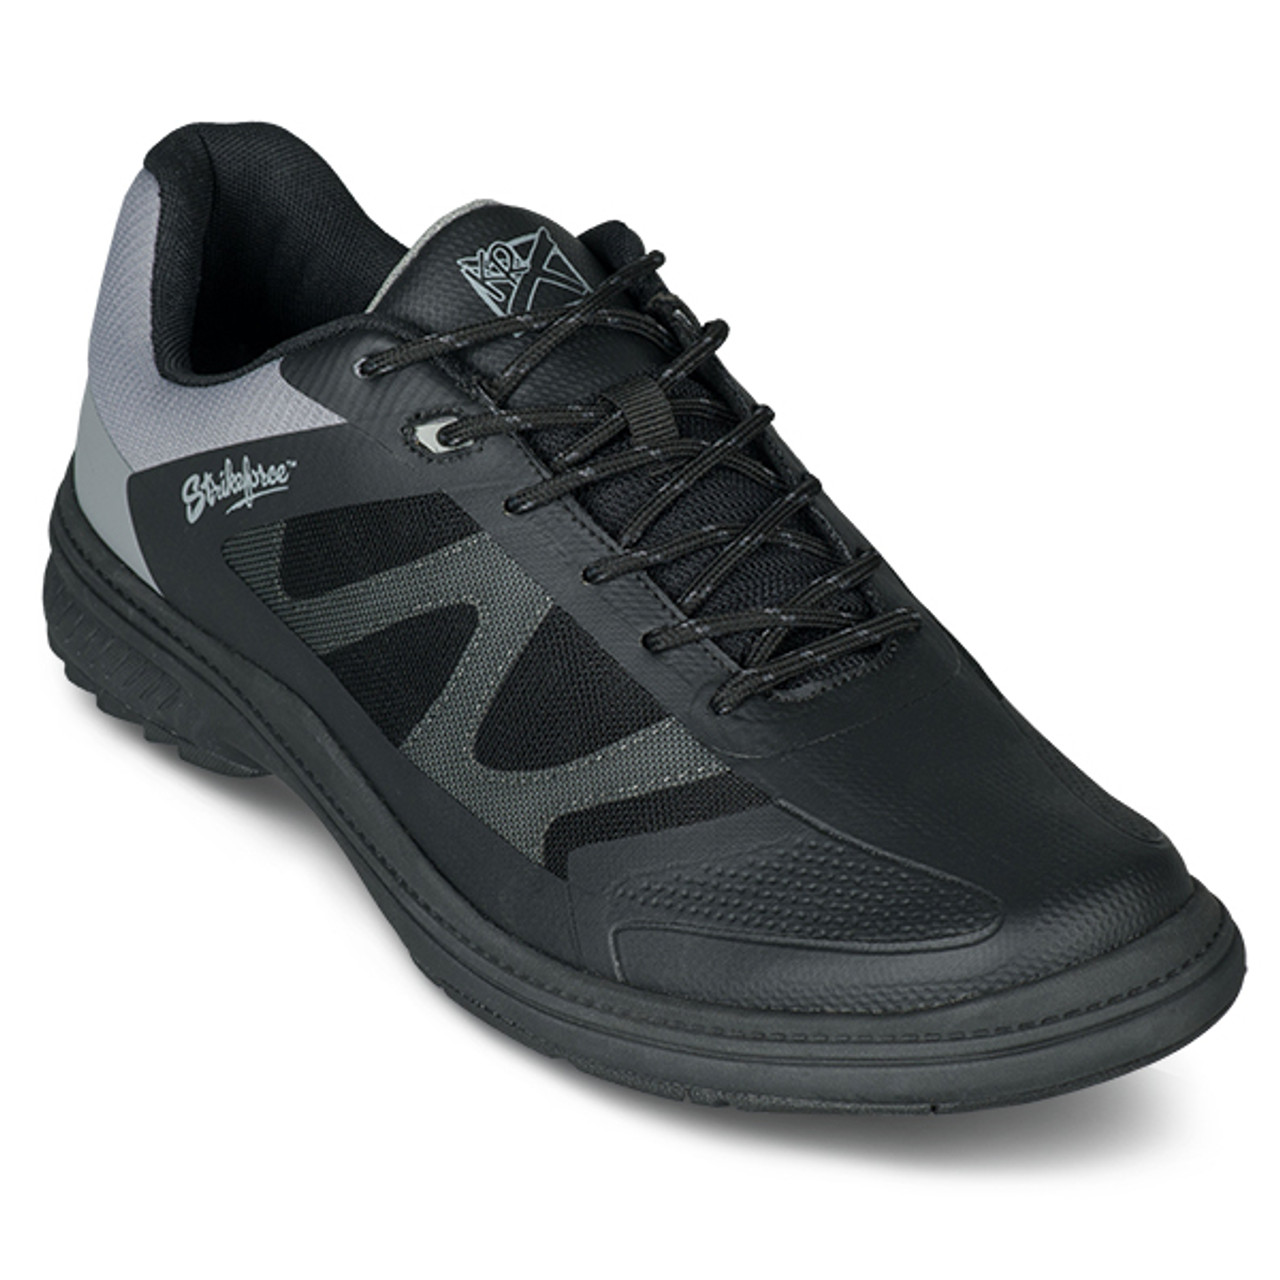 KR Strikeforce Mens Epic Bowling Shoes Black/Charcoal Right Handed WIDE